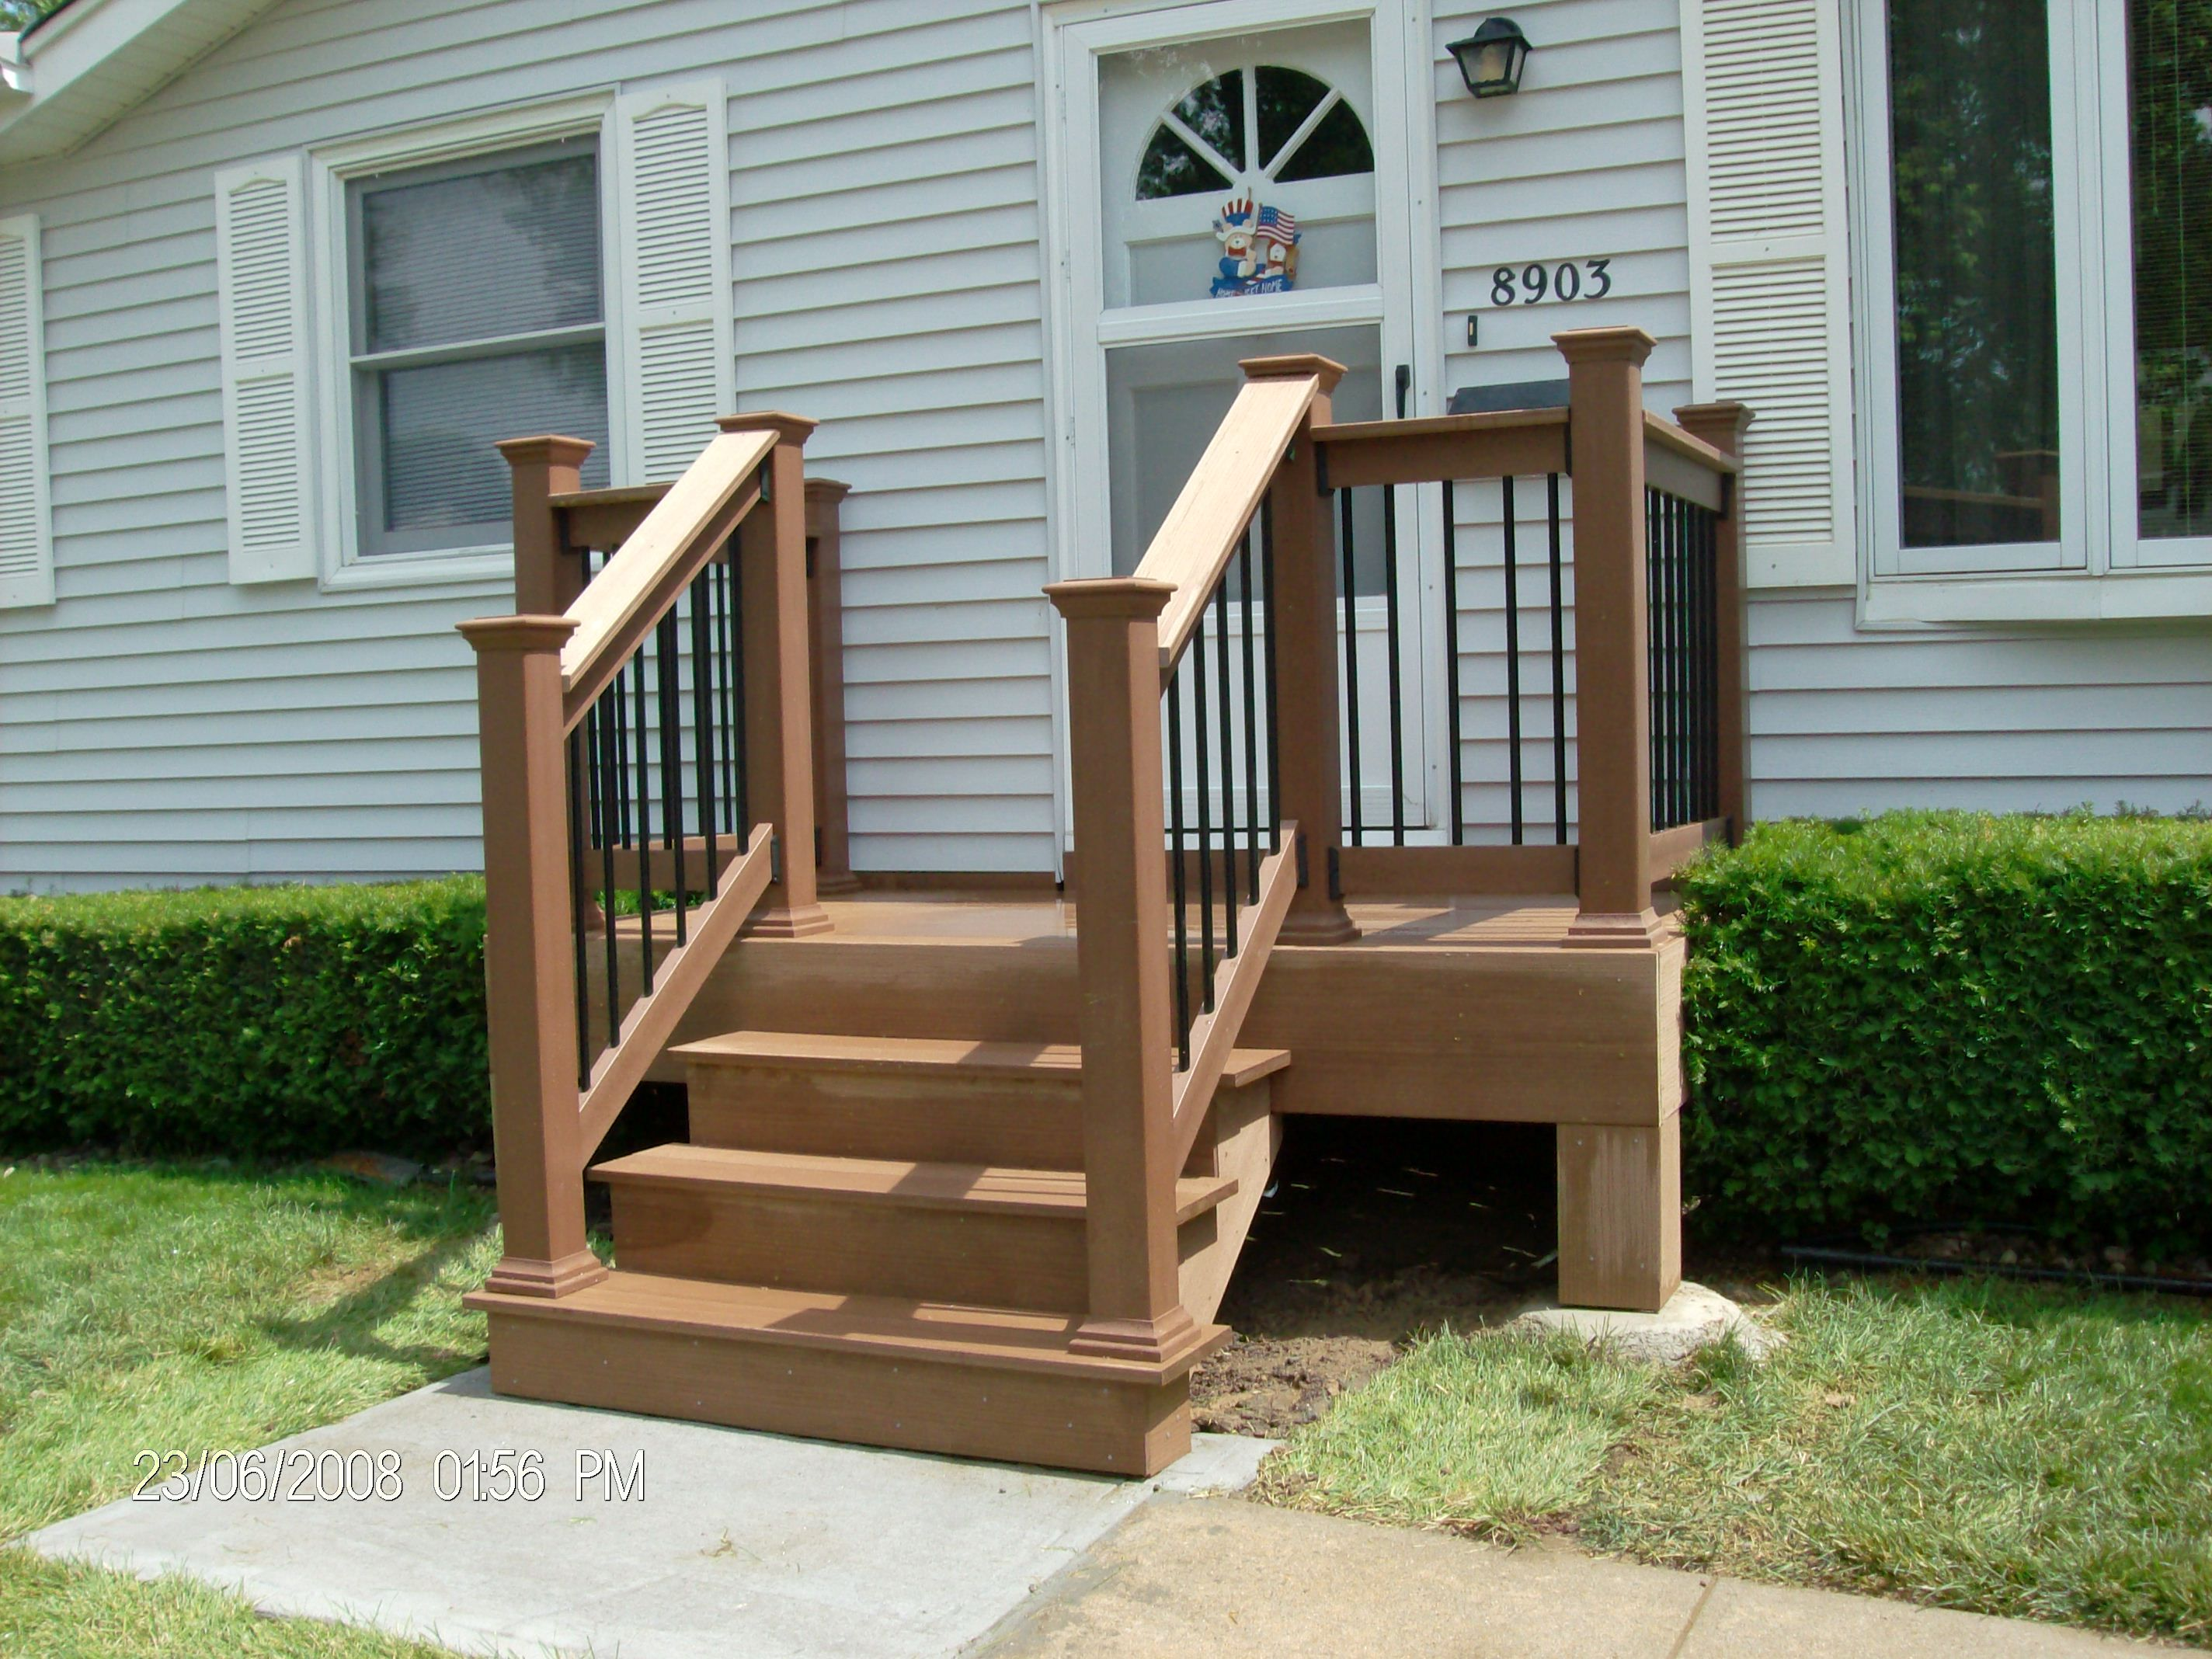 Mike Jansen Custom Cedar Decks Photo Gallery Small Front Porches Designs Front Porch Design Porch Design